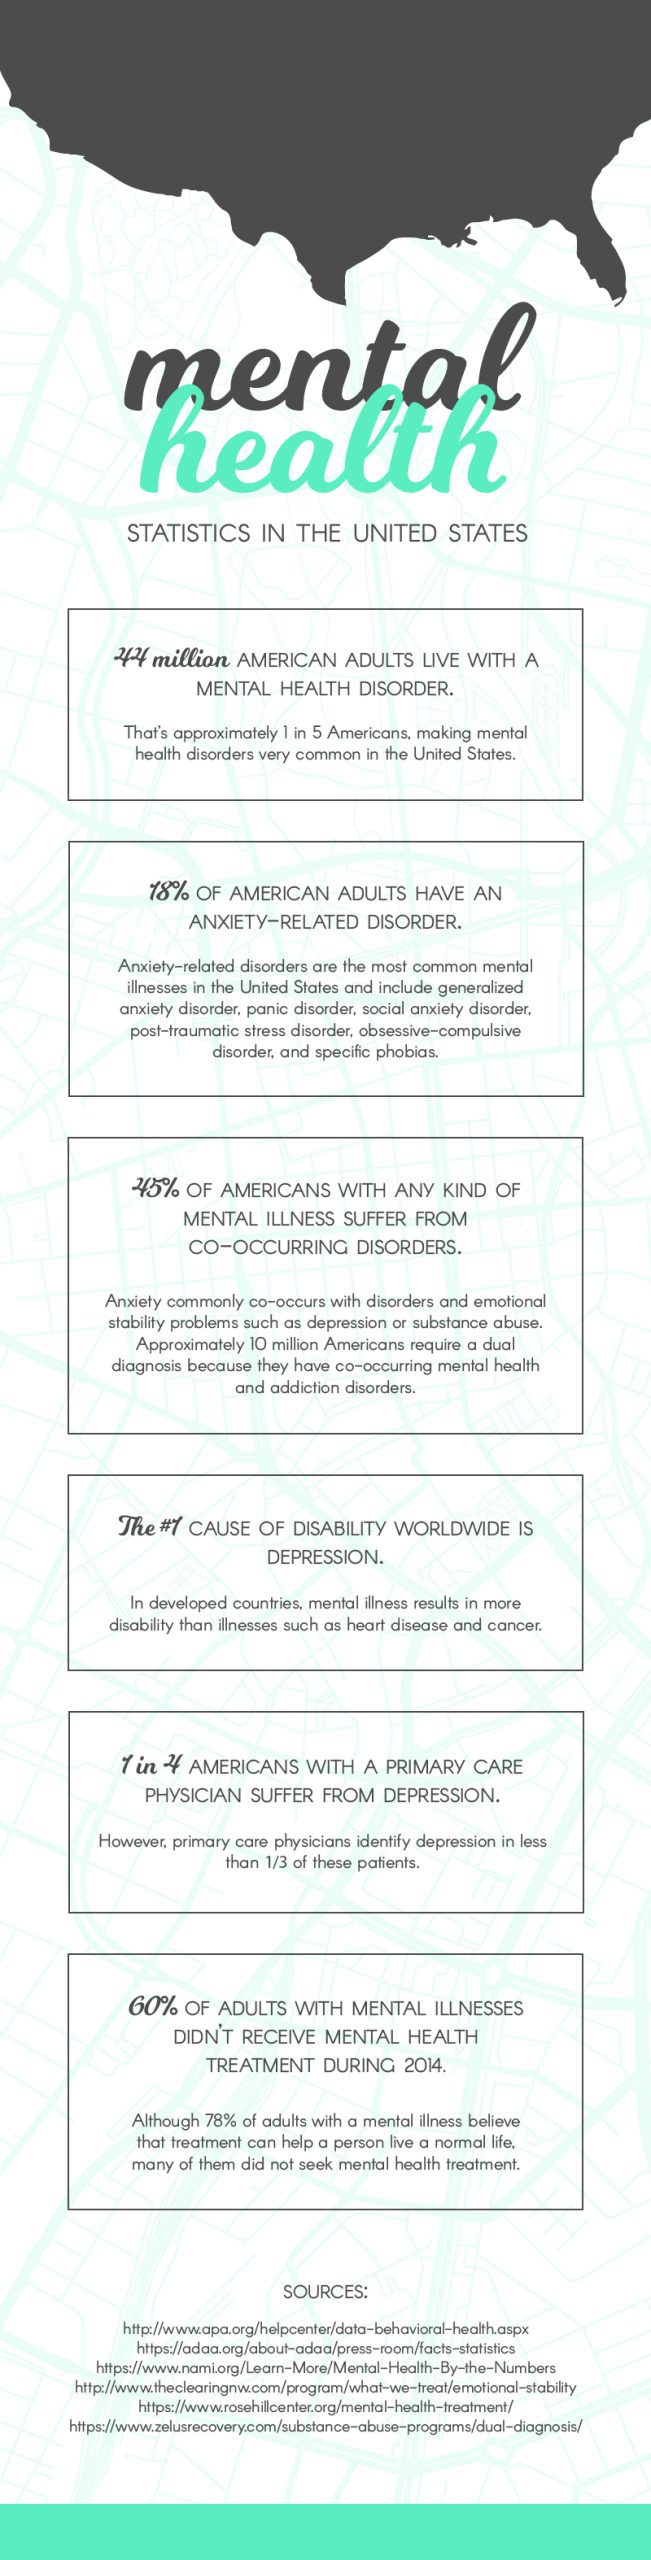 Mental health statistics in the united states have increased to over 44 million american adults who live with a mental health disorder.